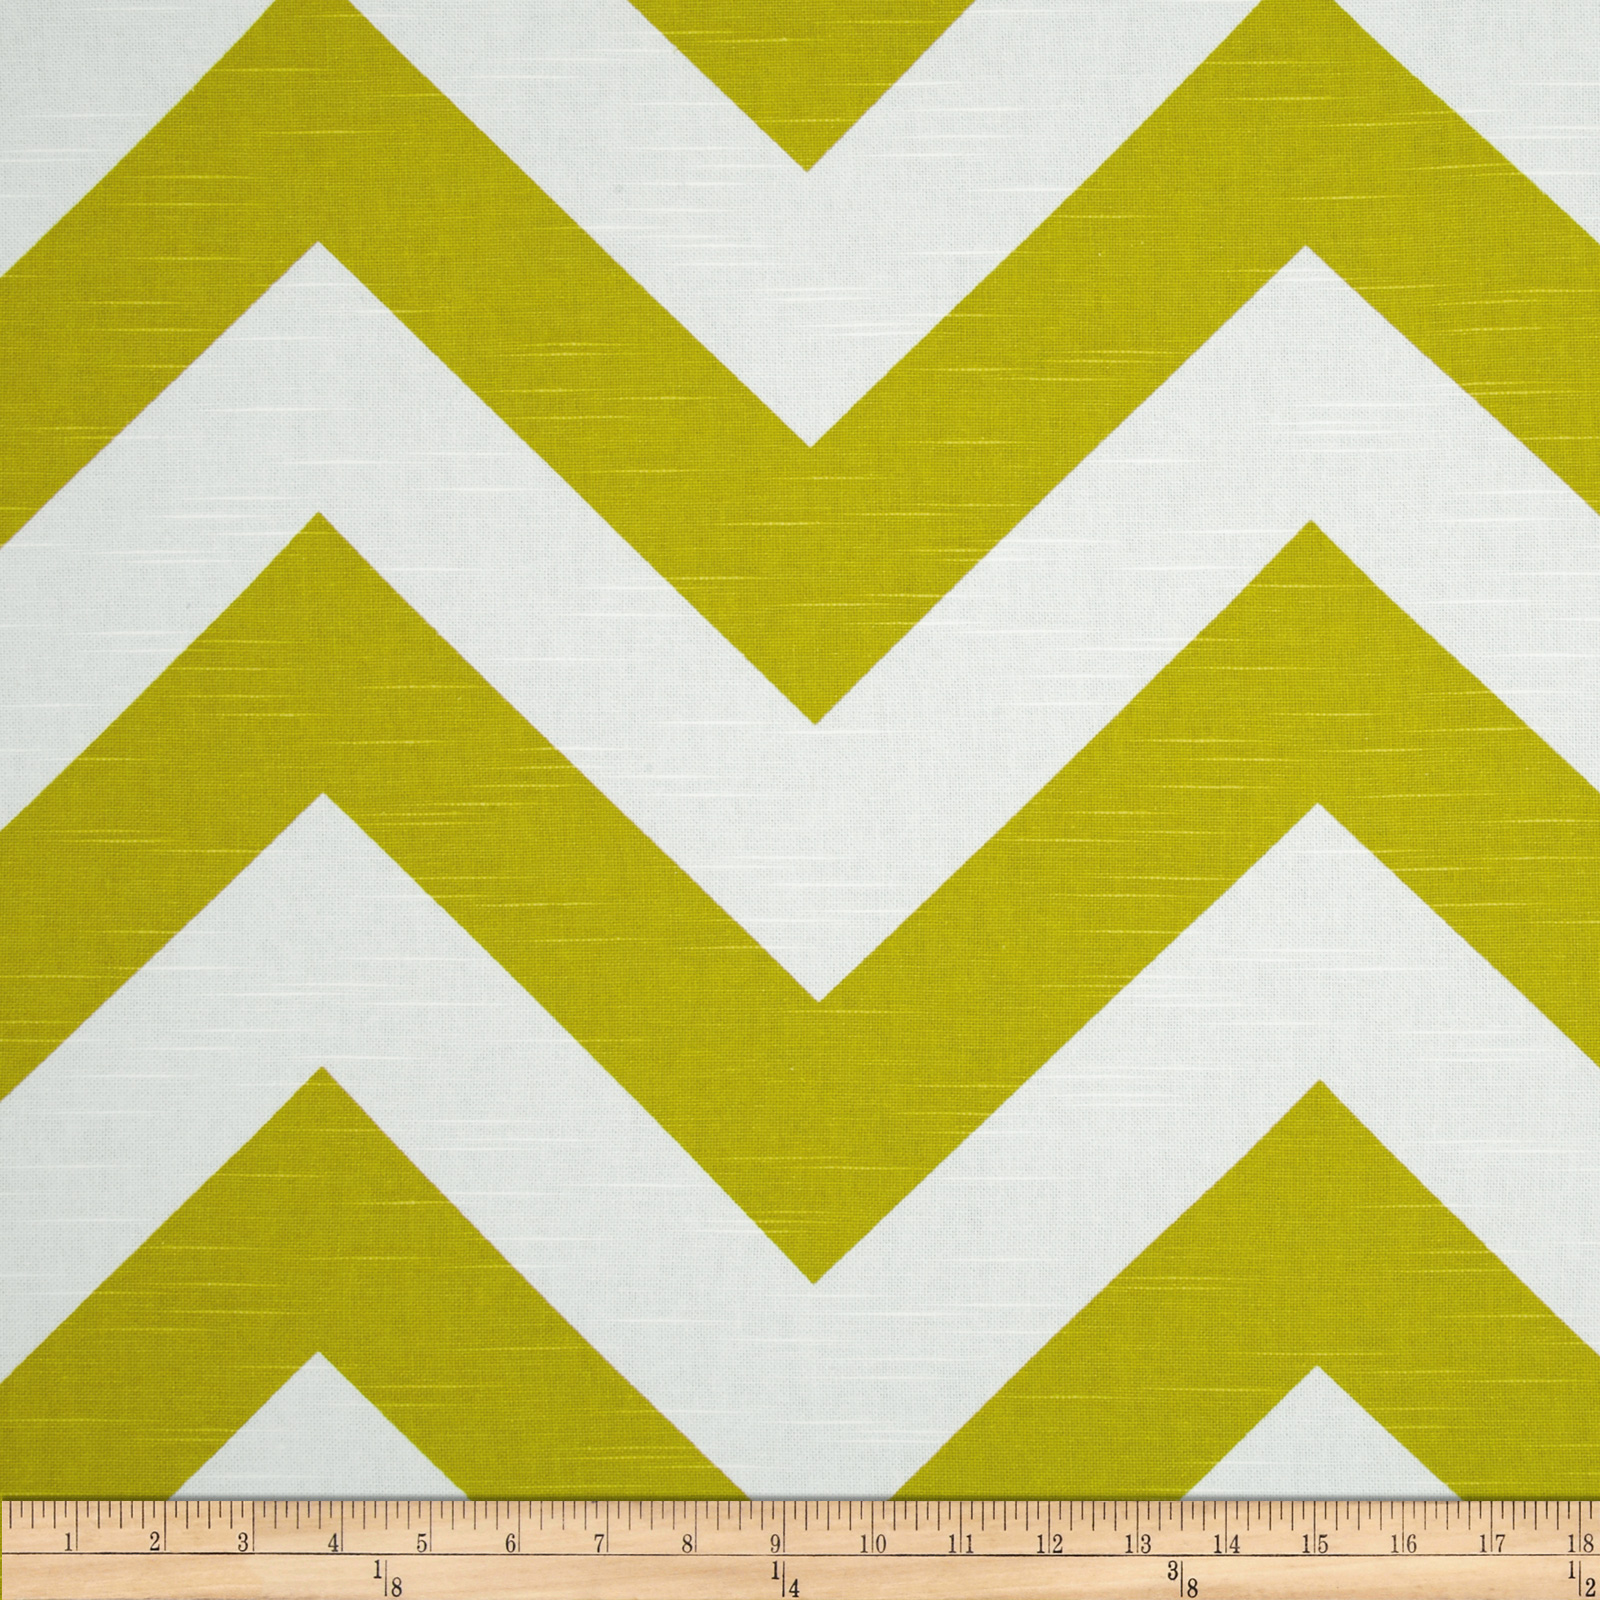 Premier Prints Zippy Chevron Slub Artist Green